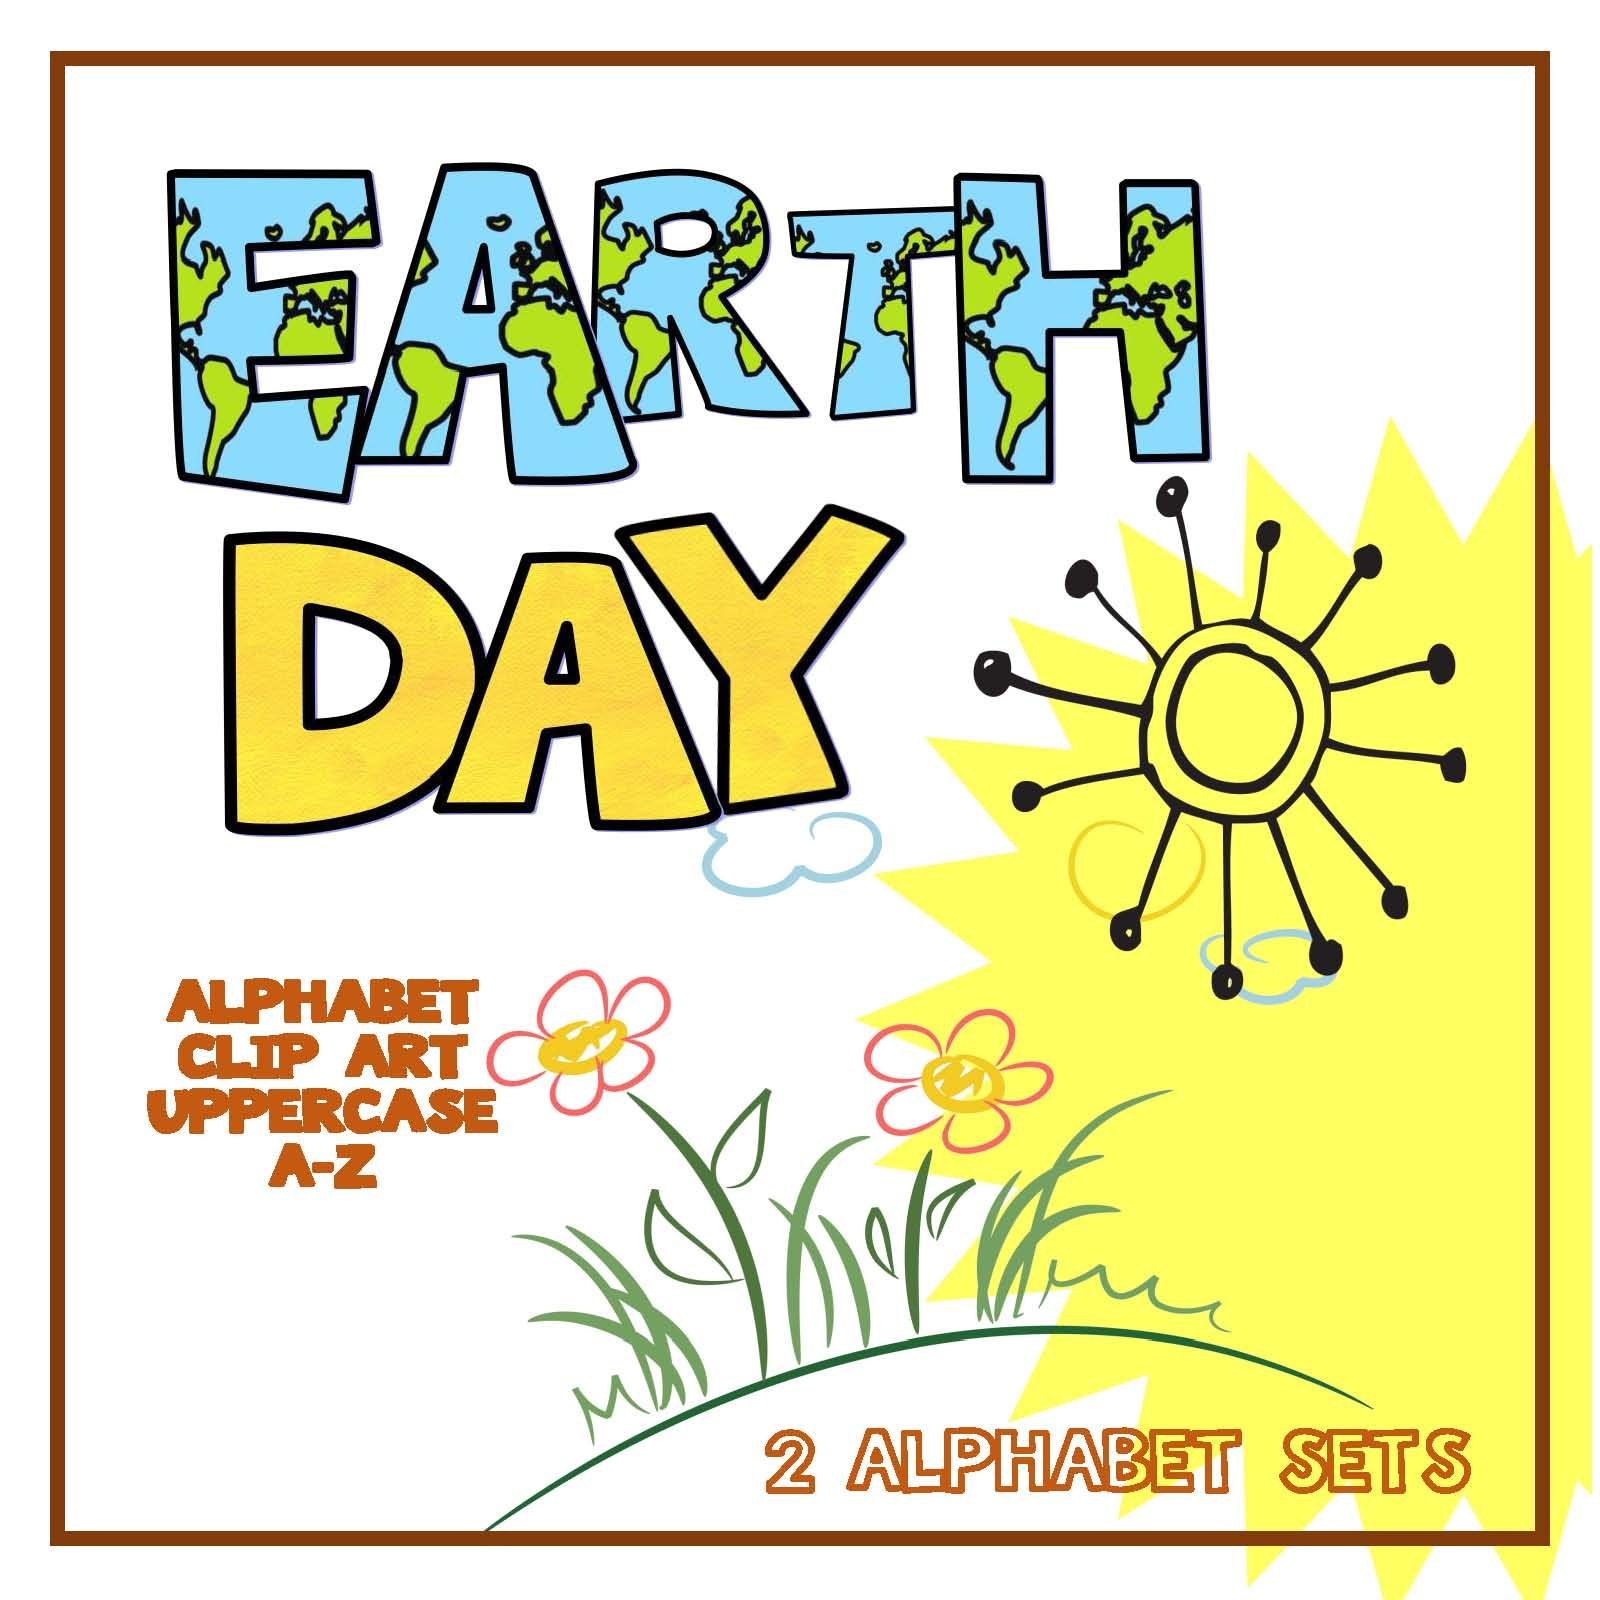 Alphabet Letters Clipart Earth Day Uppercase Amp Lowercase